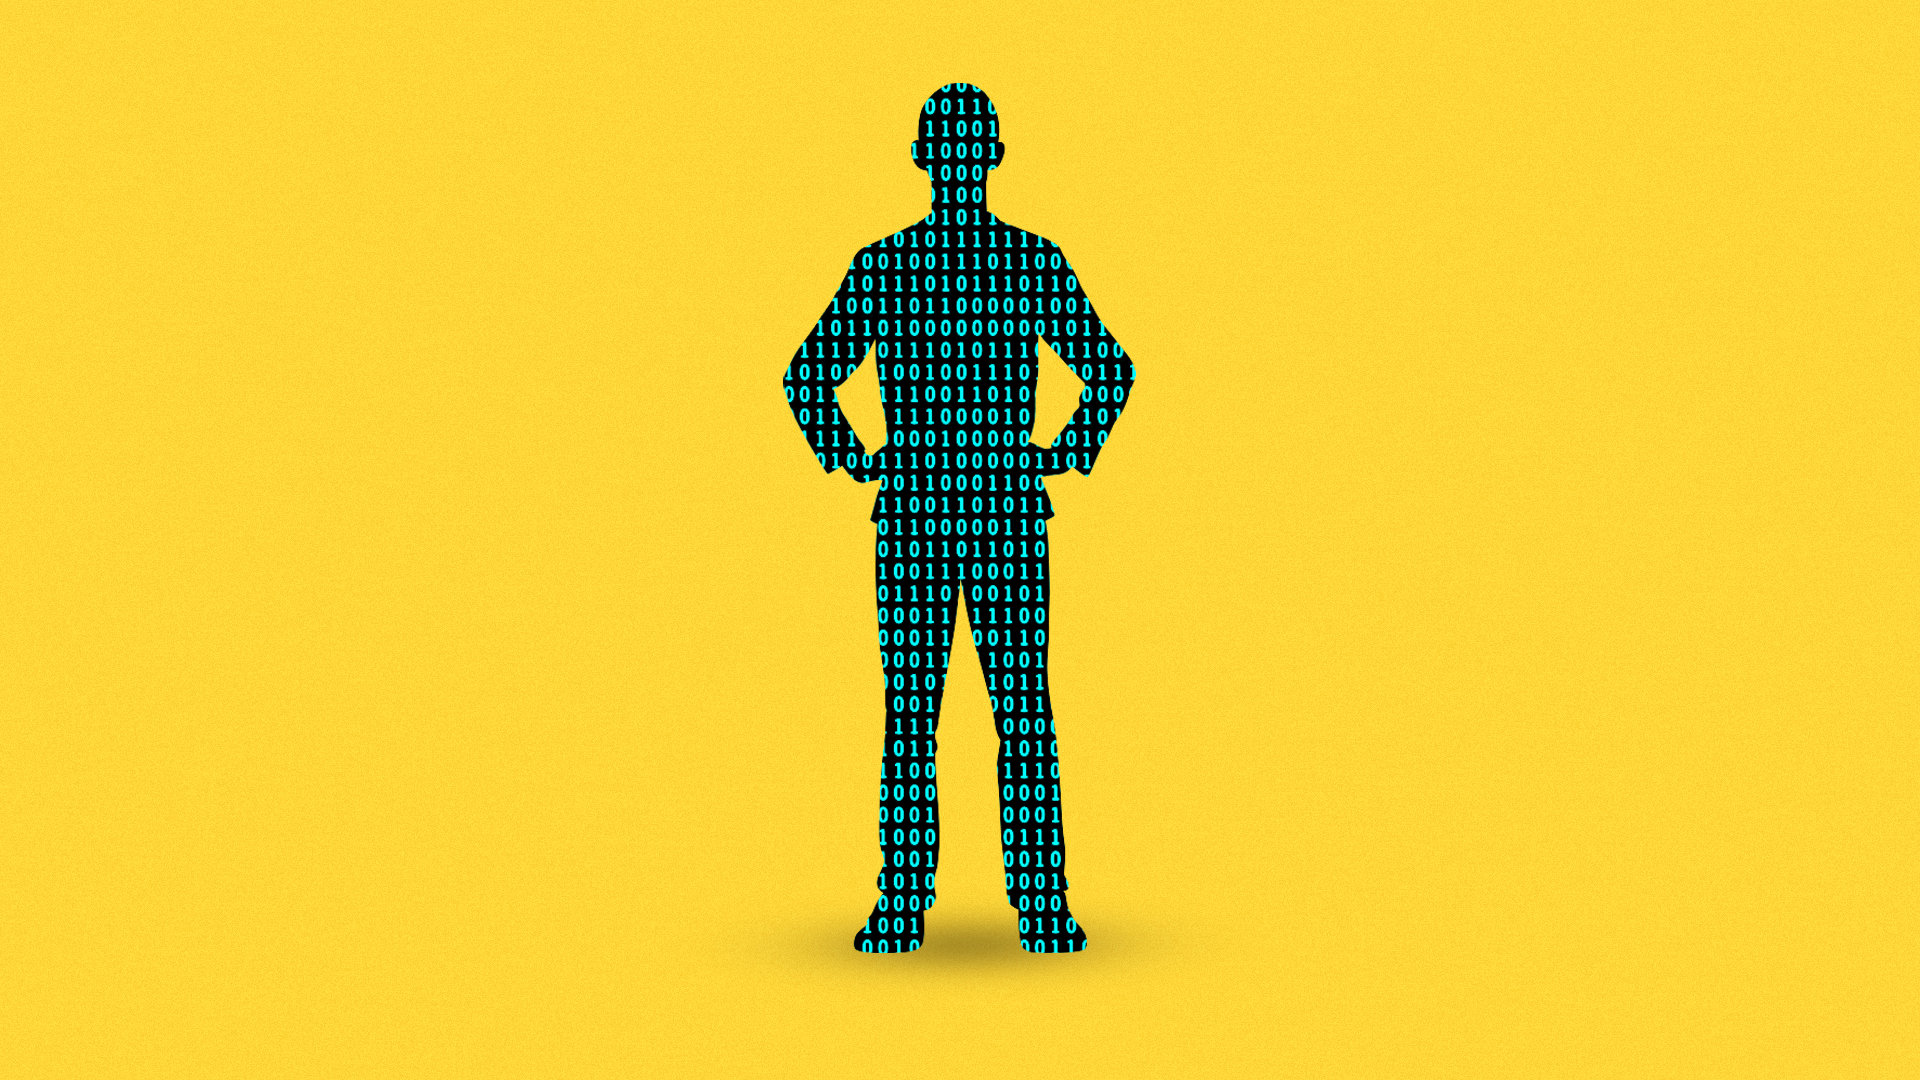 llustration of binary code as a human silhouette.